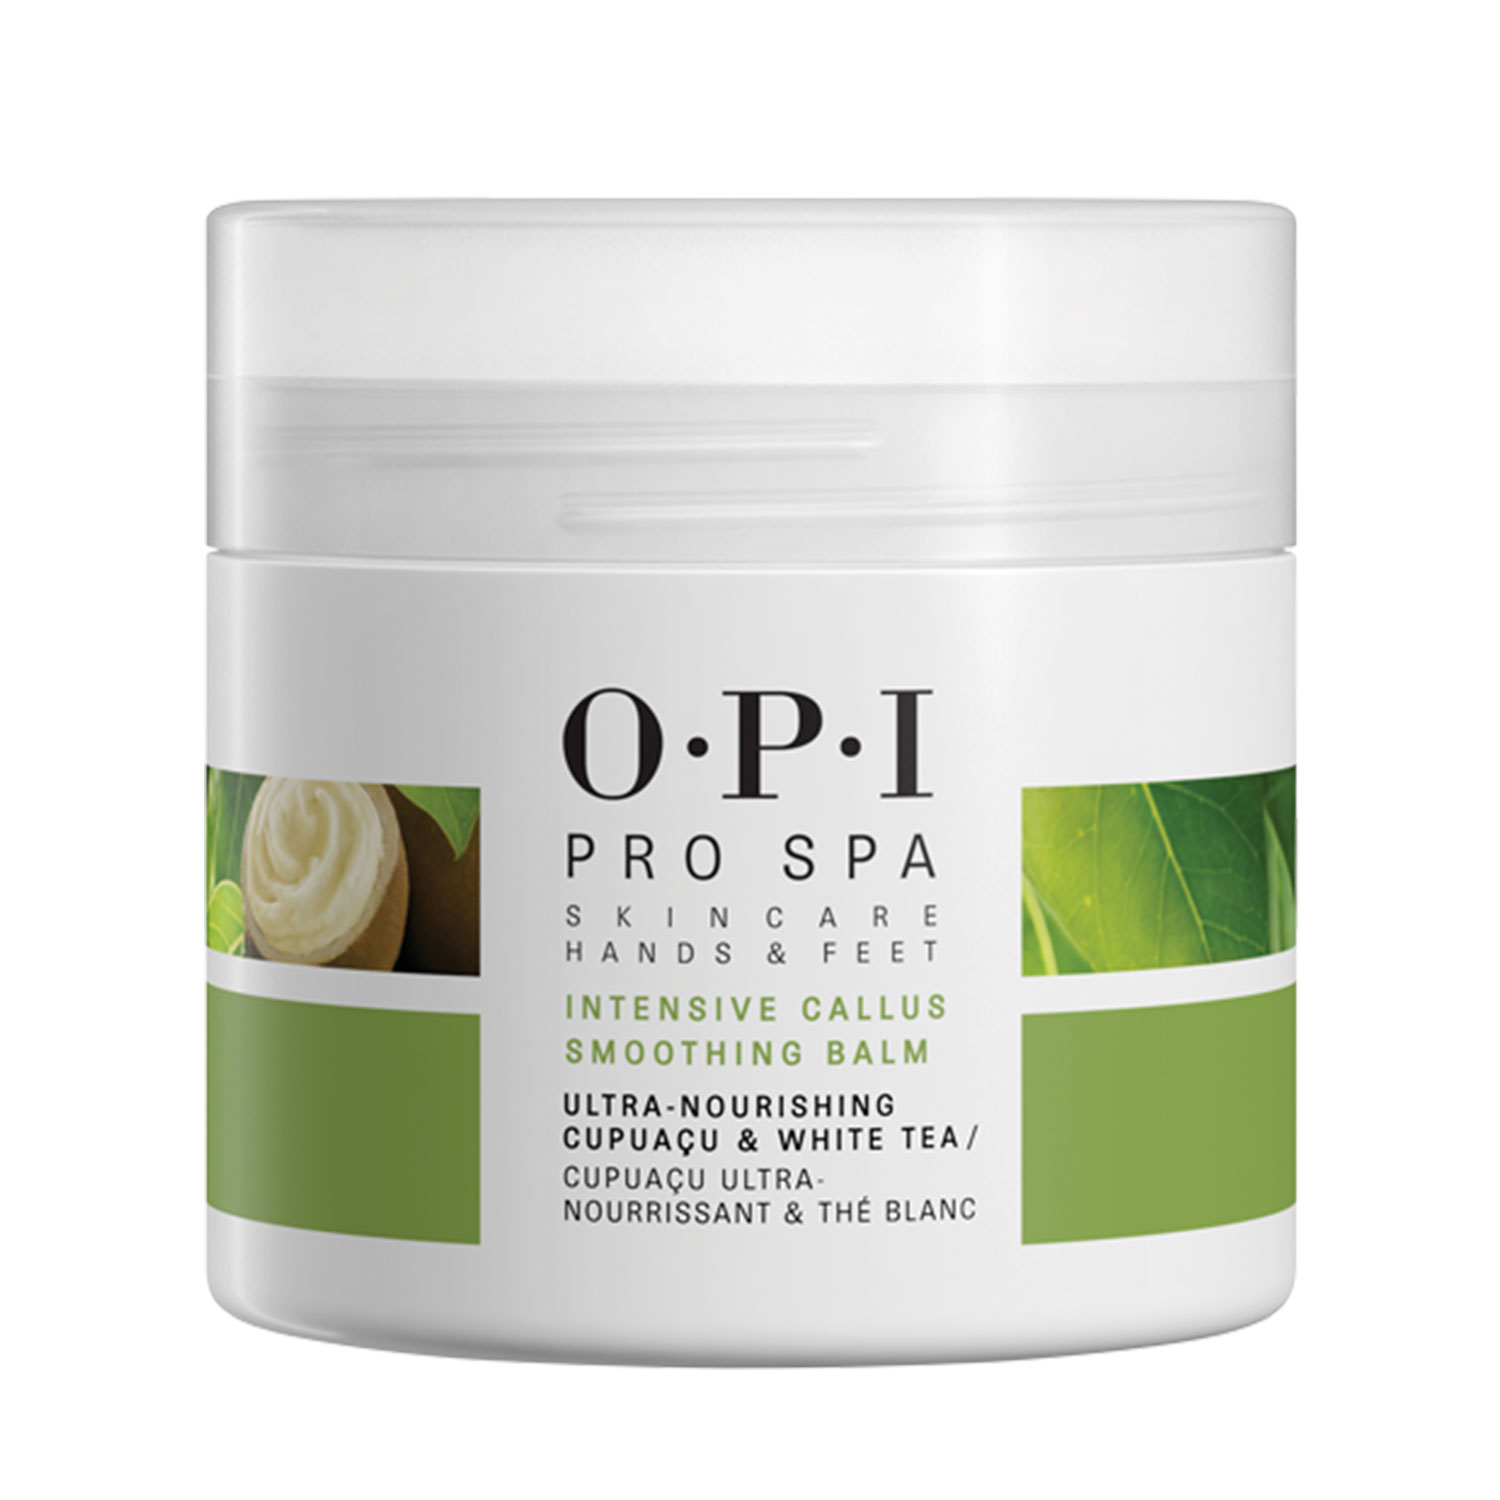 Pro Spa - Intensive Callus Smoothing Balm